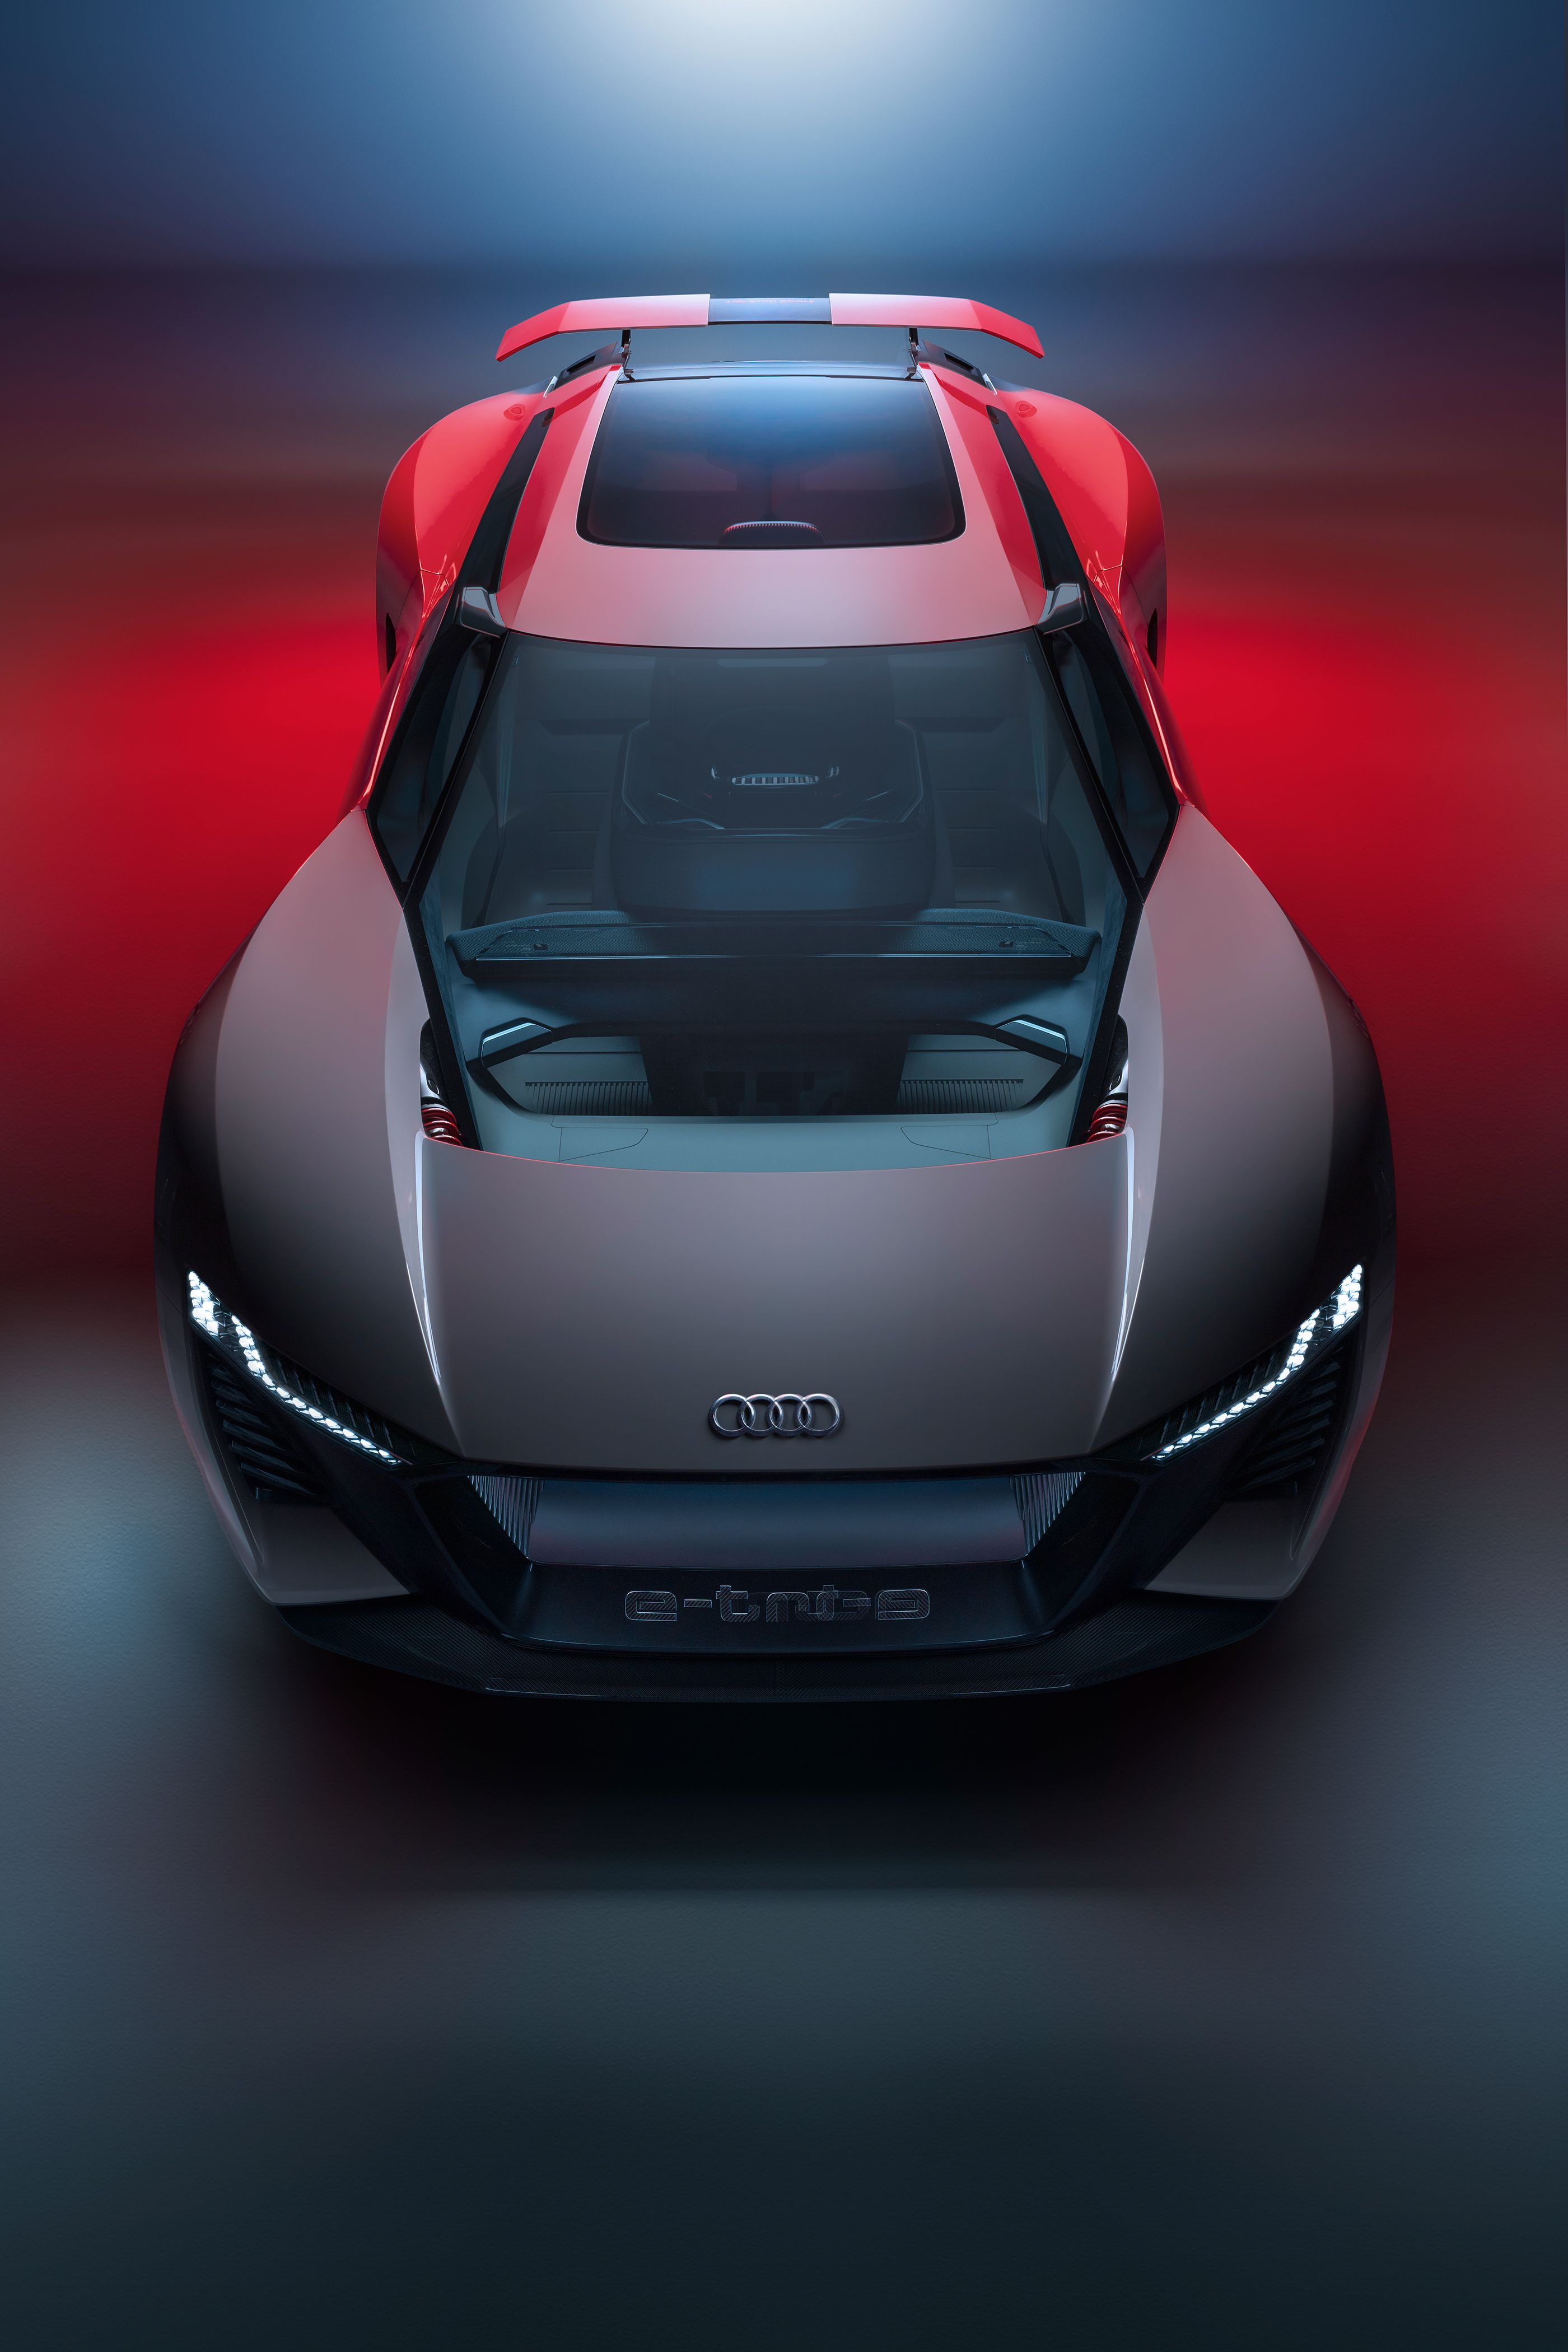 Audi Pb18 Concept On Behance Sports Cars Luxury Car In The World Audi